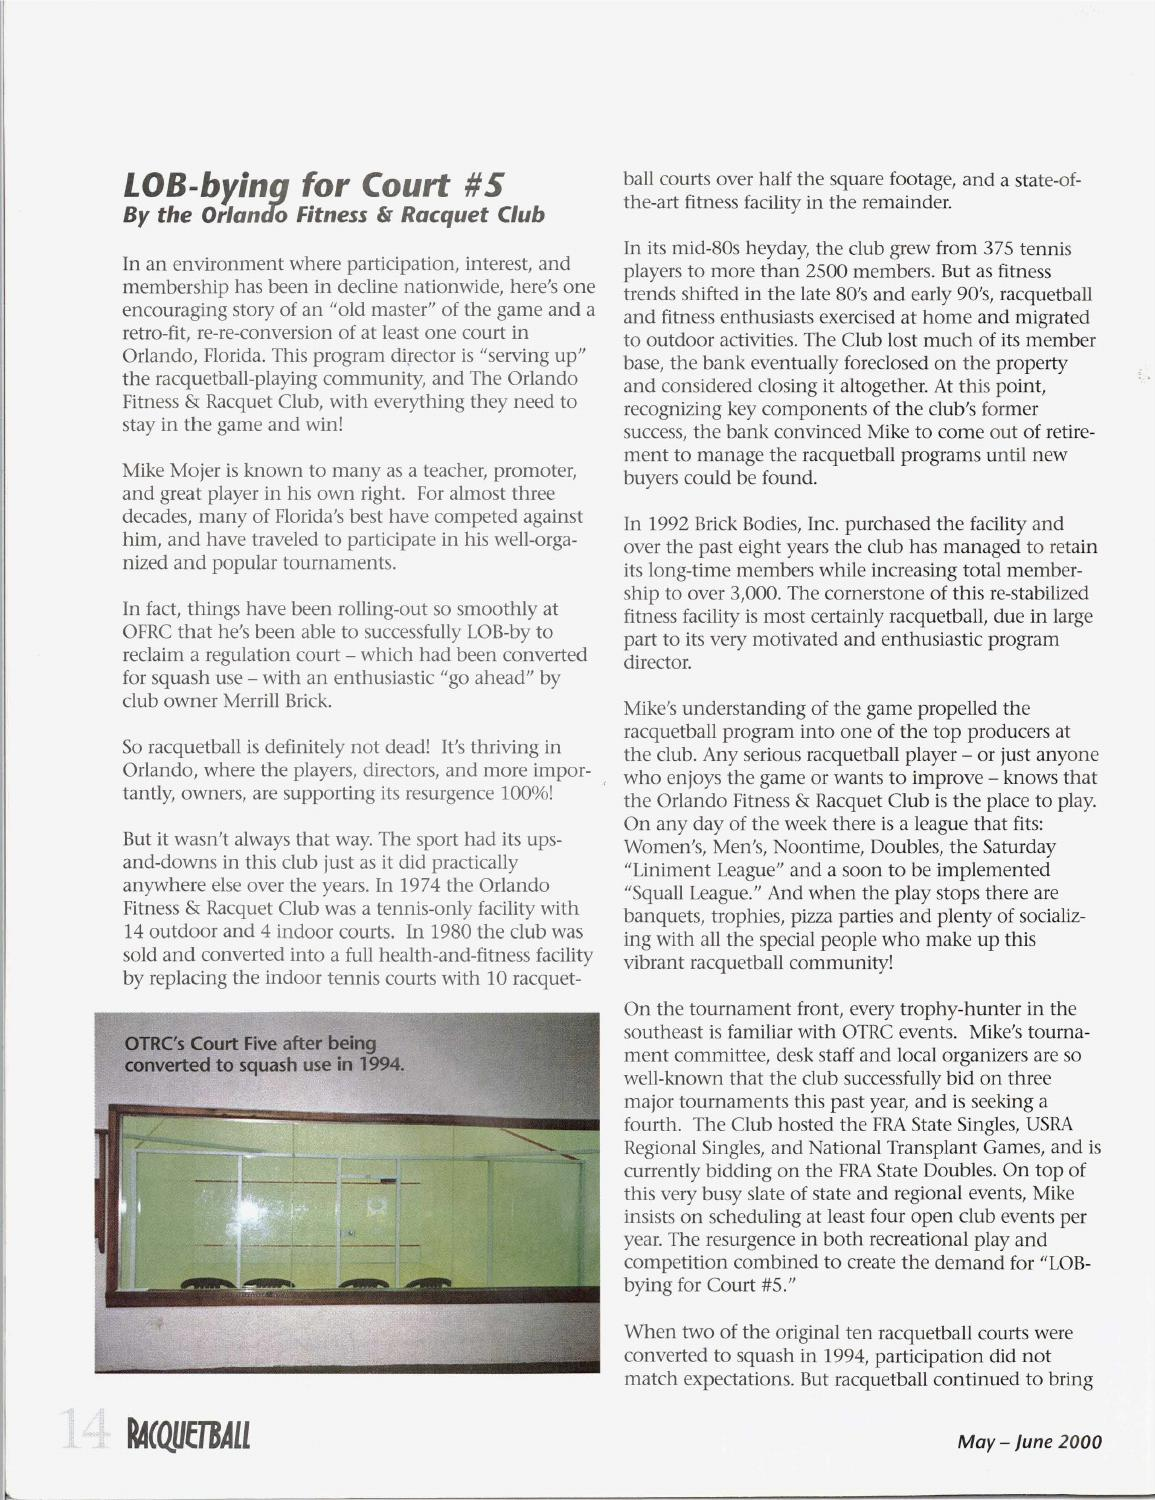 Racquetball Magazine - May/June 2000 by Jimmy Oliver - issuu